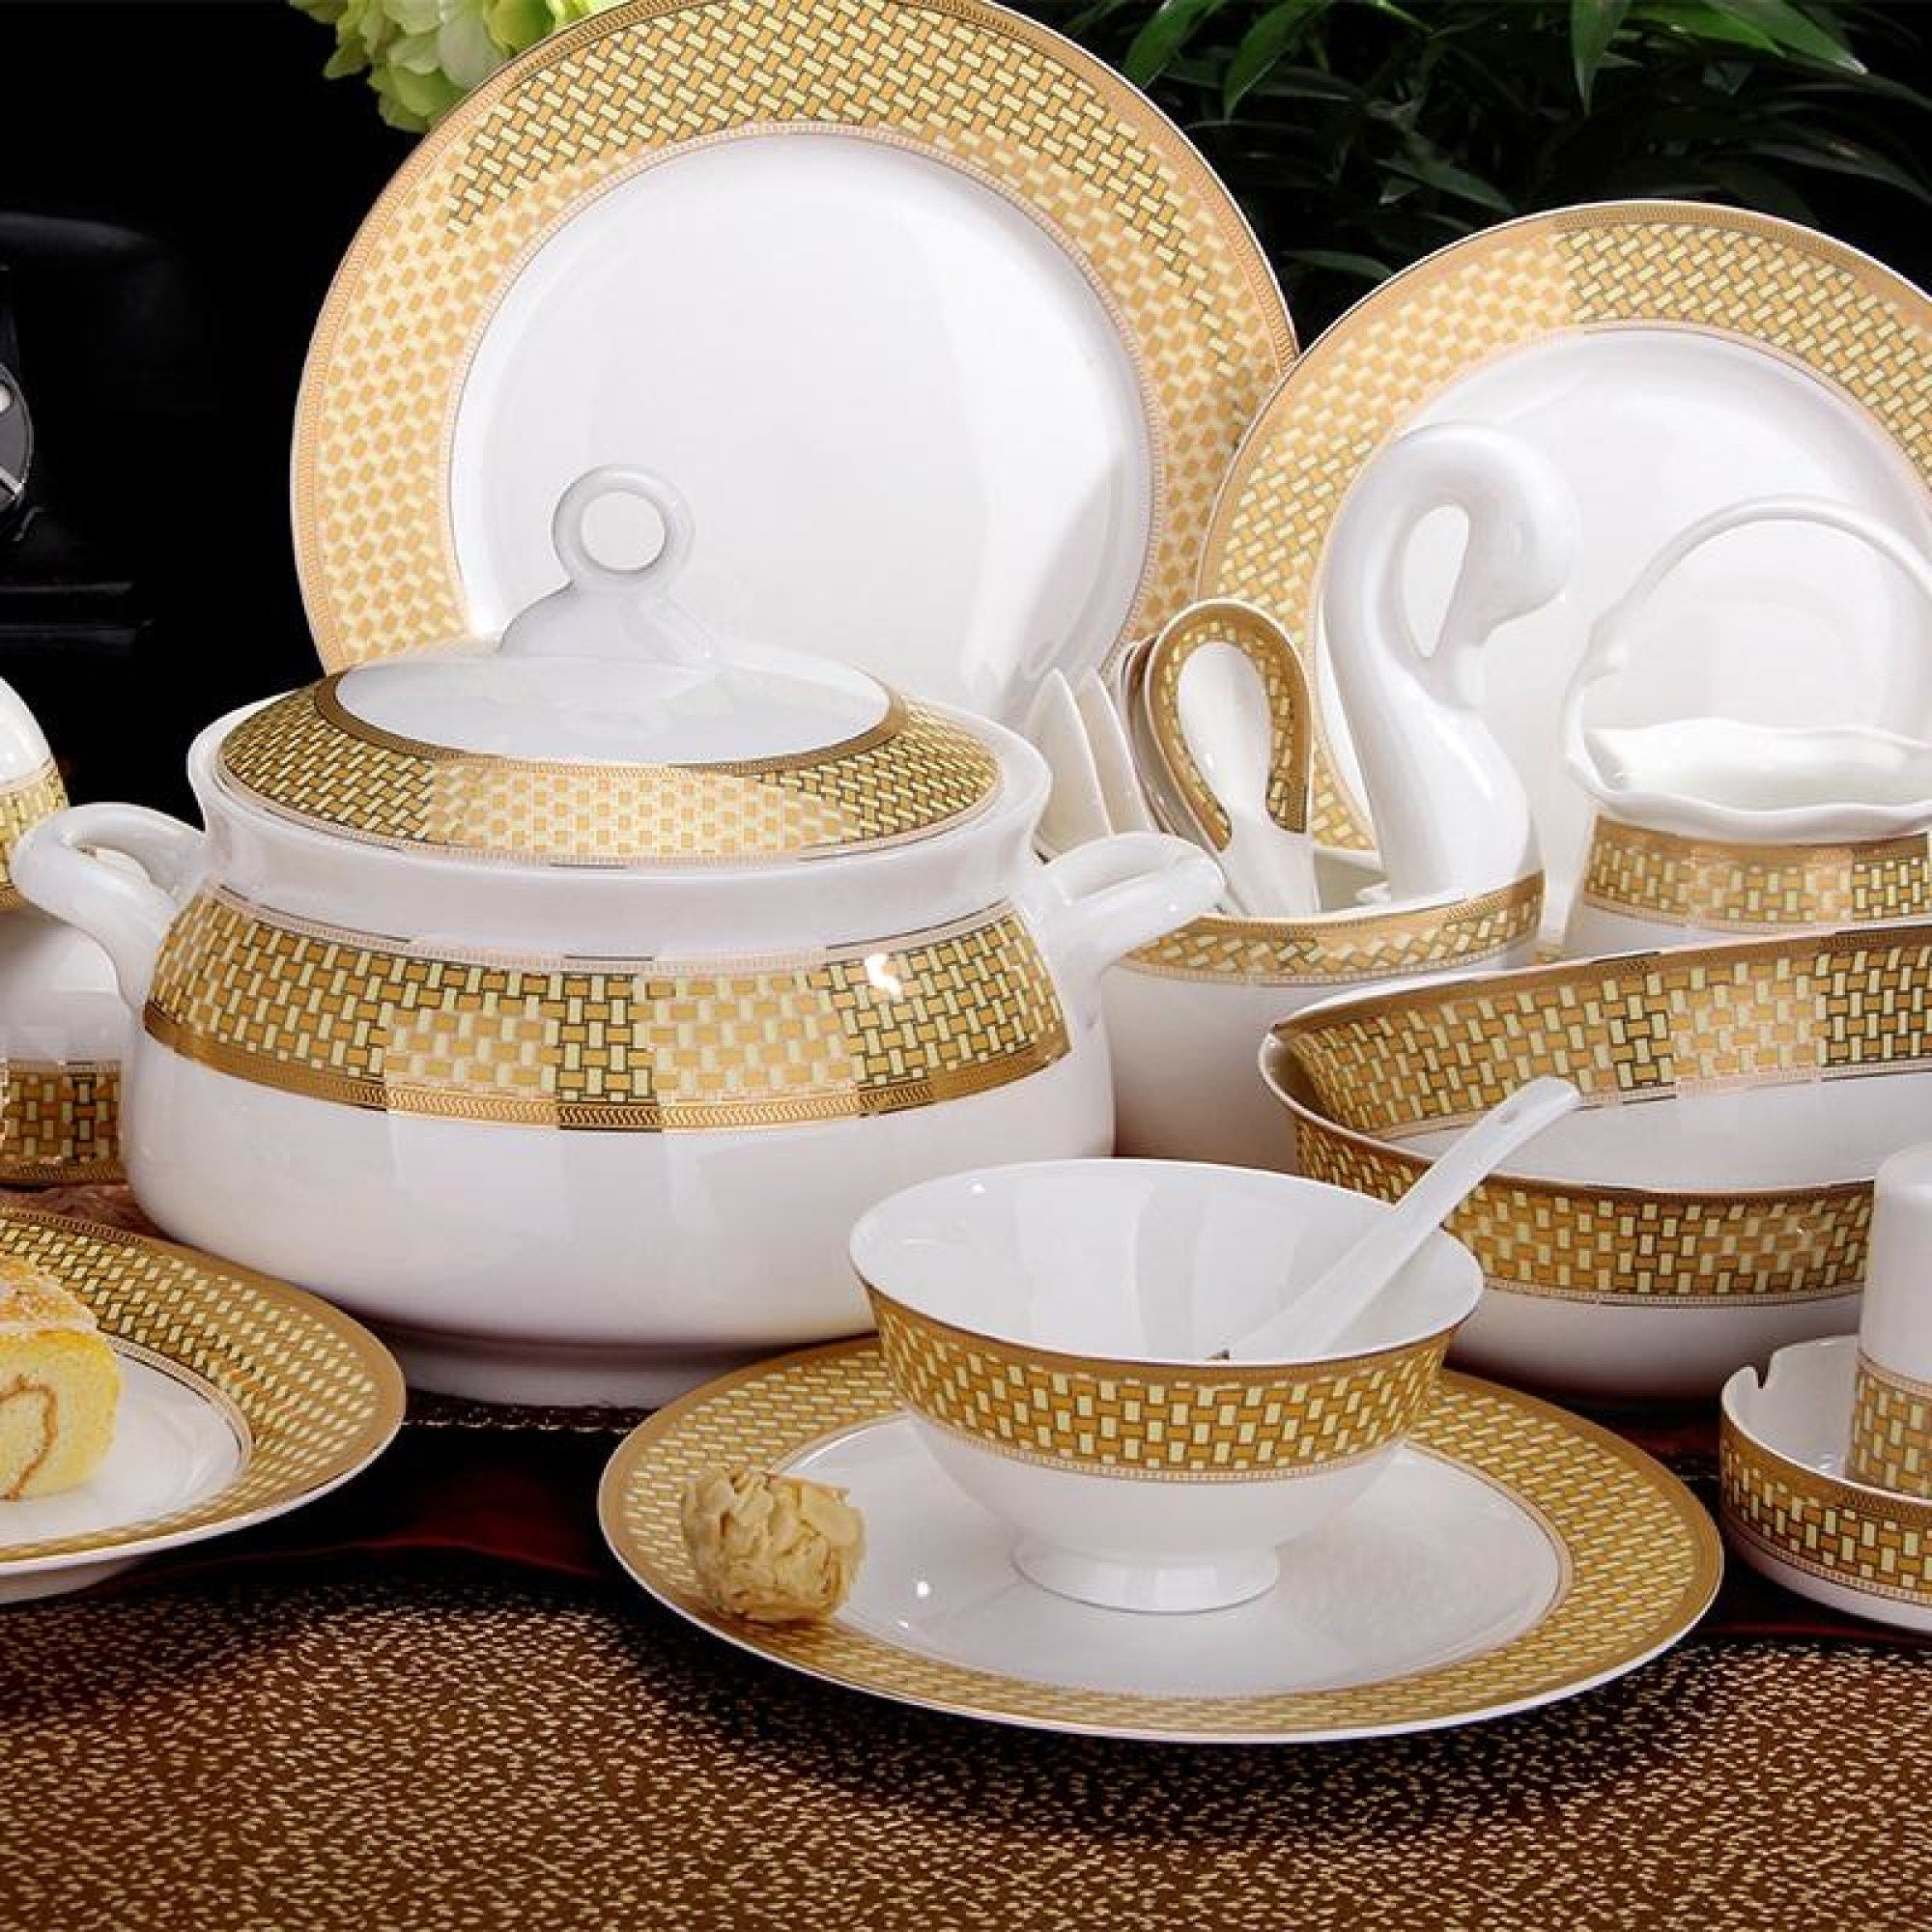 Kitchen Dinner Sets Cheaper Than Retail Price Buy Clothing Accessories And Lifestyle Products For Women Men